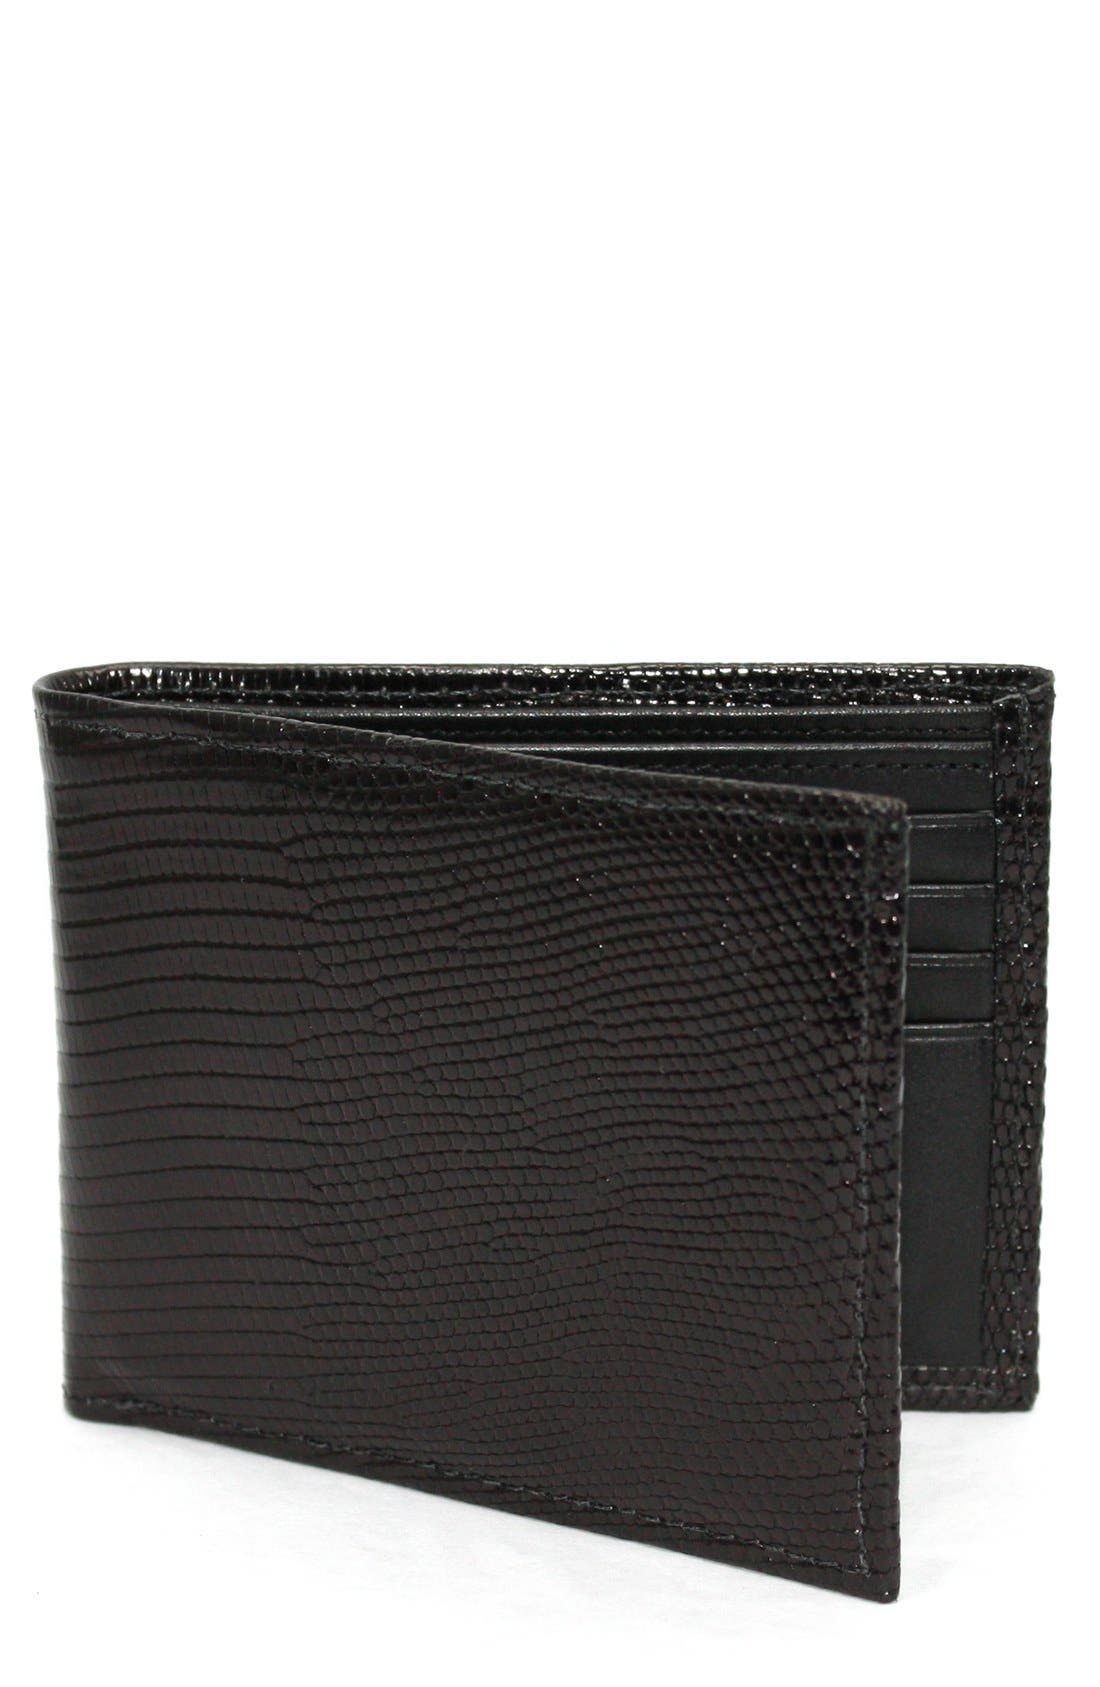 Textured lizard skin lends exotic sophistication to a striking wallet that\\\'s sure to keep your plastic and cash organized. Style Name: Torino Genuine Lizard Wallet. Style Number: 5080239. Available in stores.